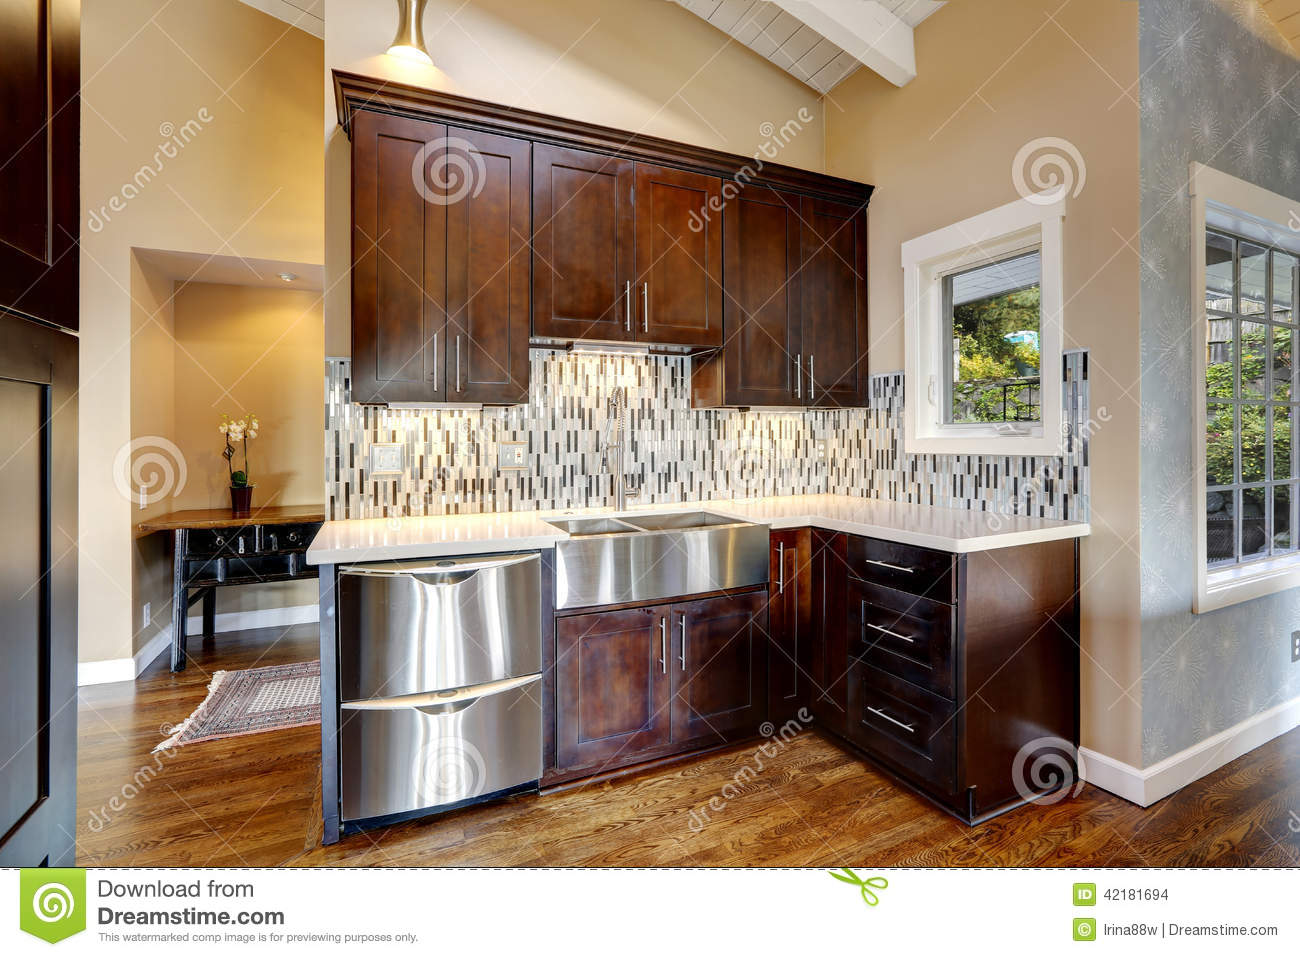 Modern kitchen storage cabinets stock photo image 42181694 for Dark brown kitchen cabinets with stainless steel appliances